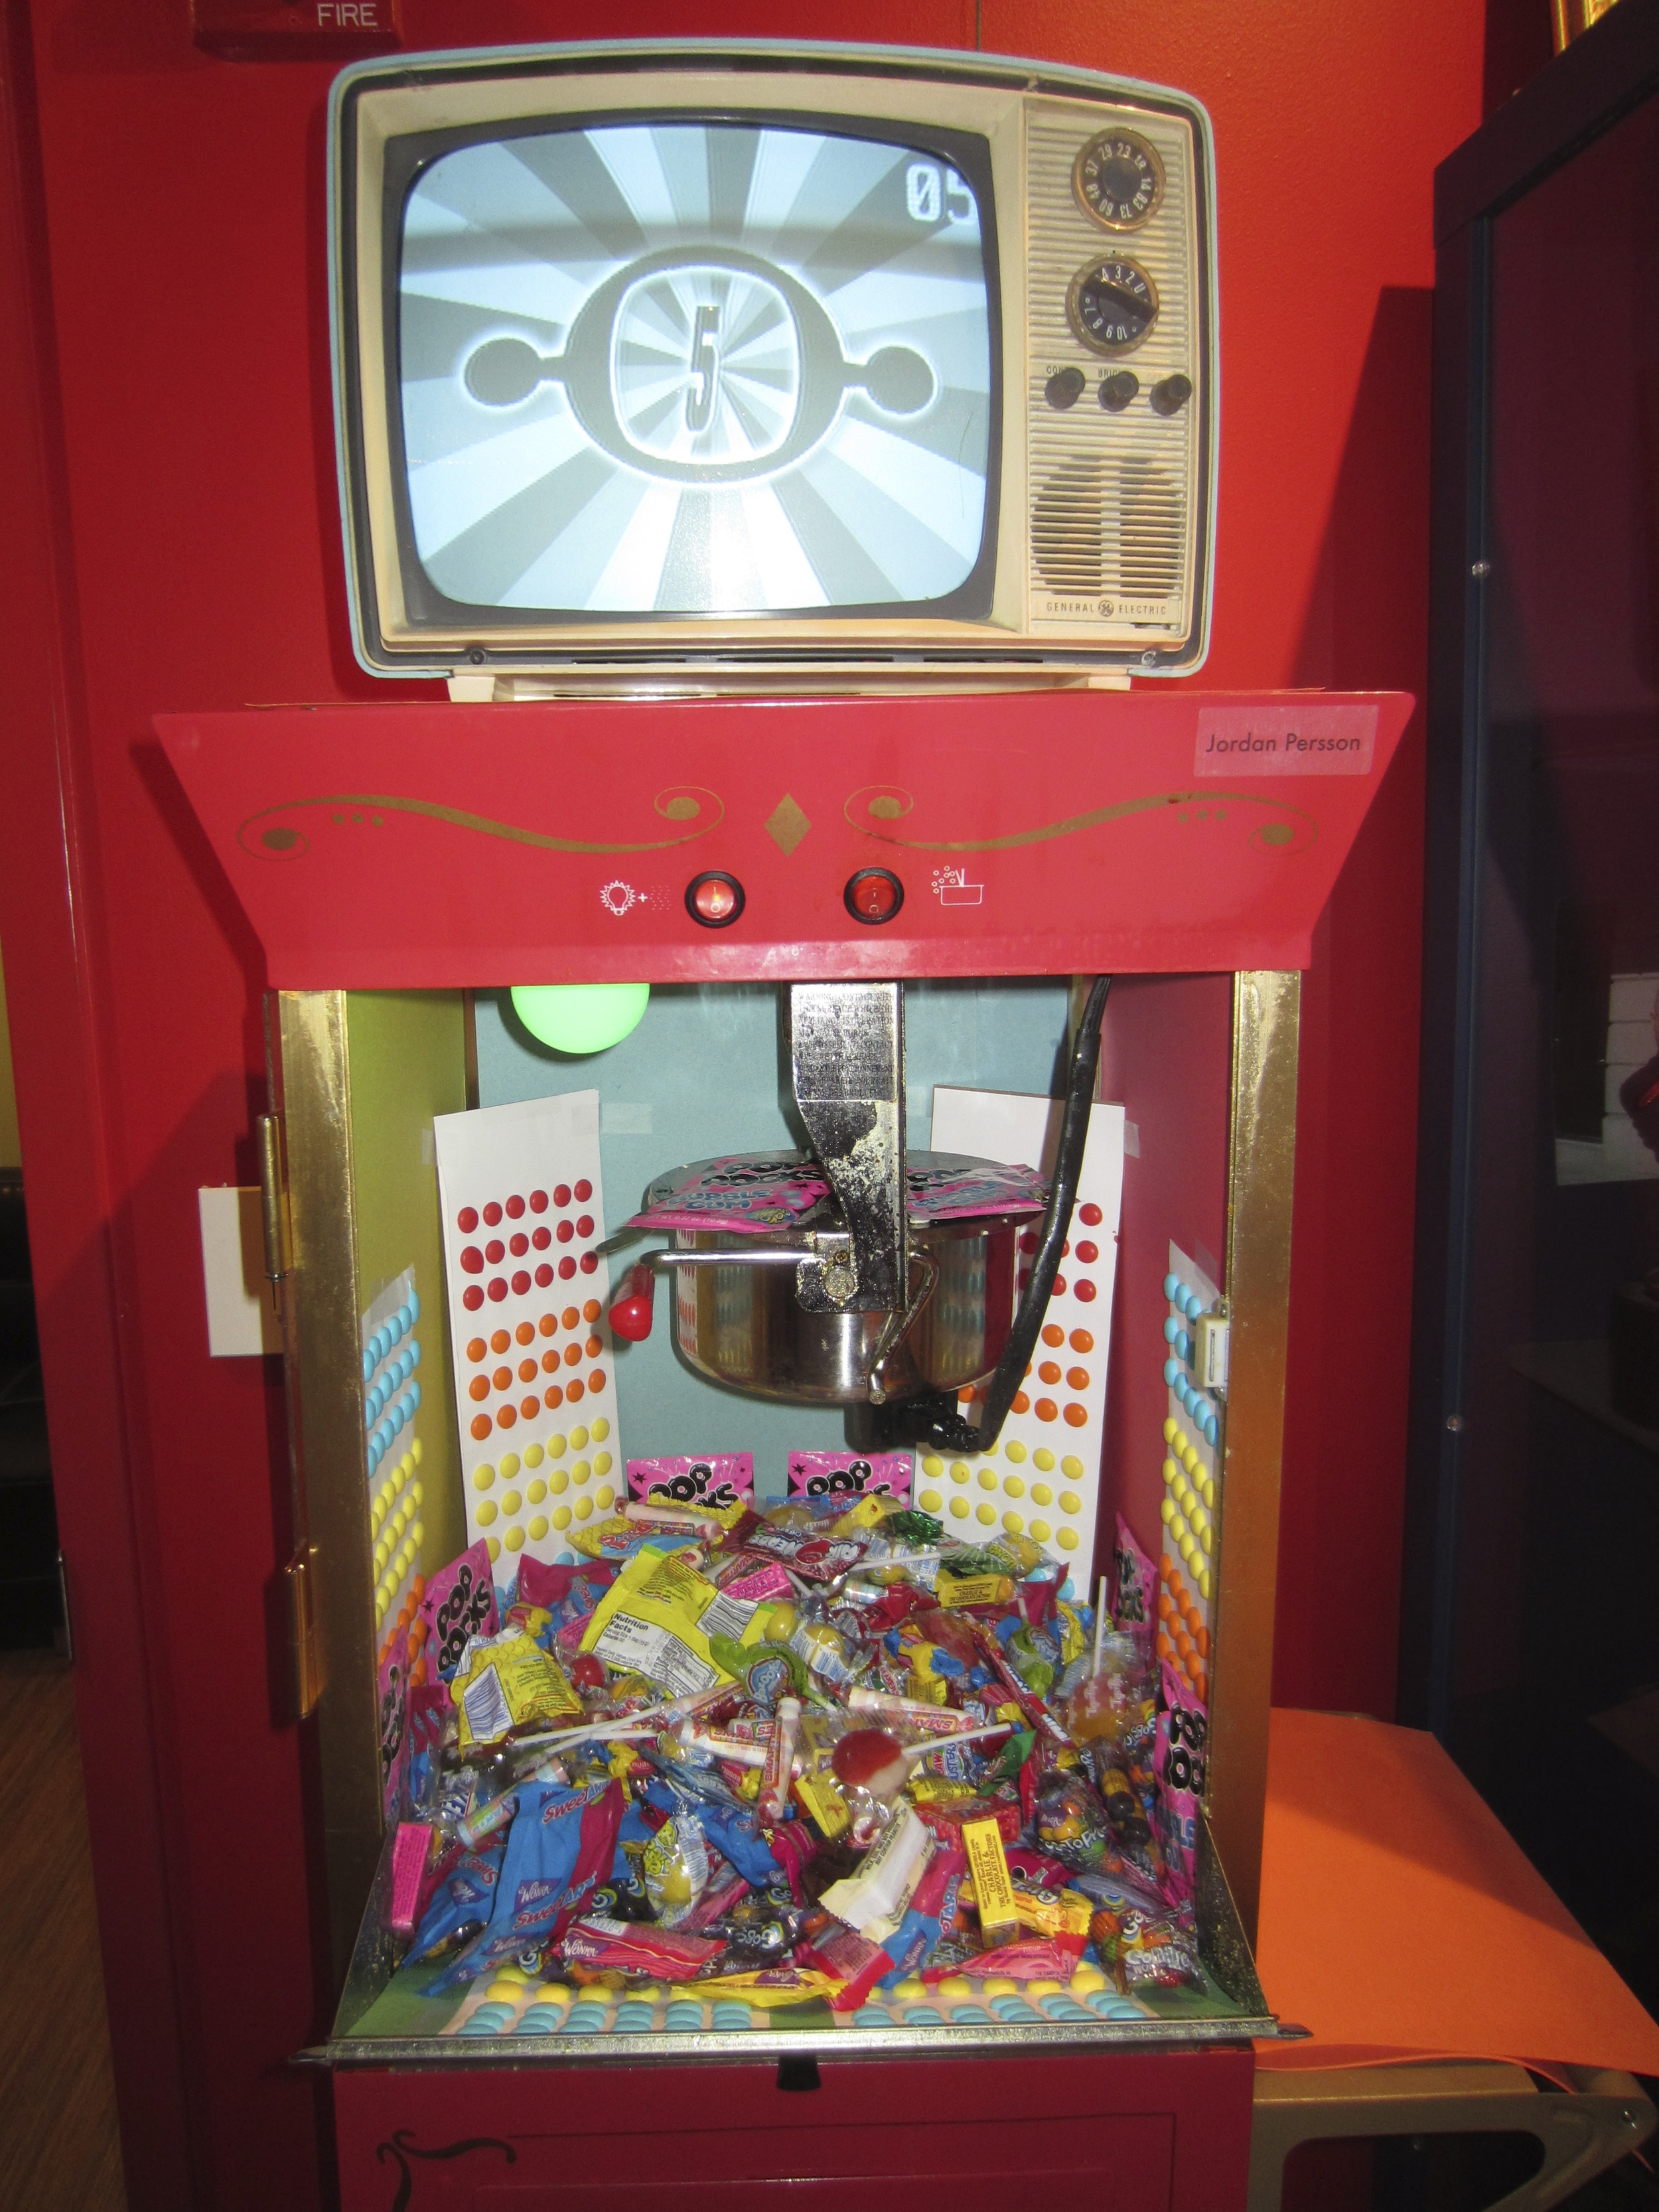 TV candy